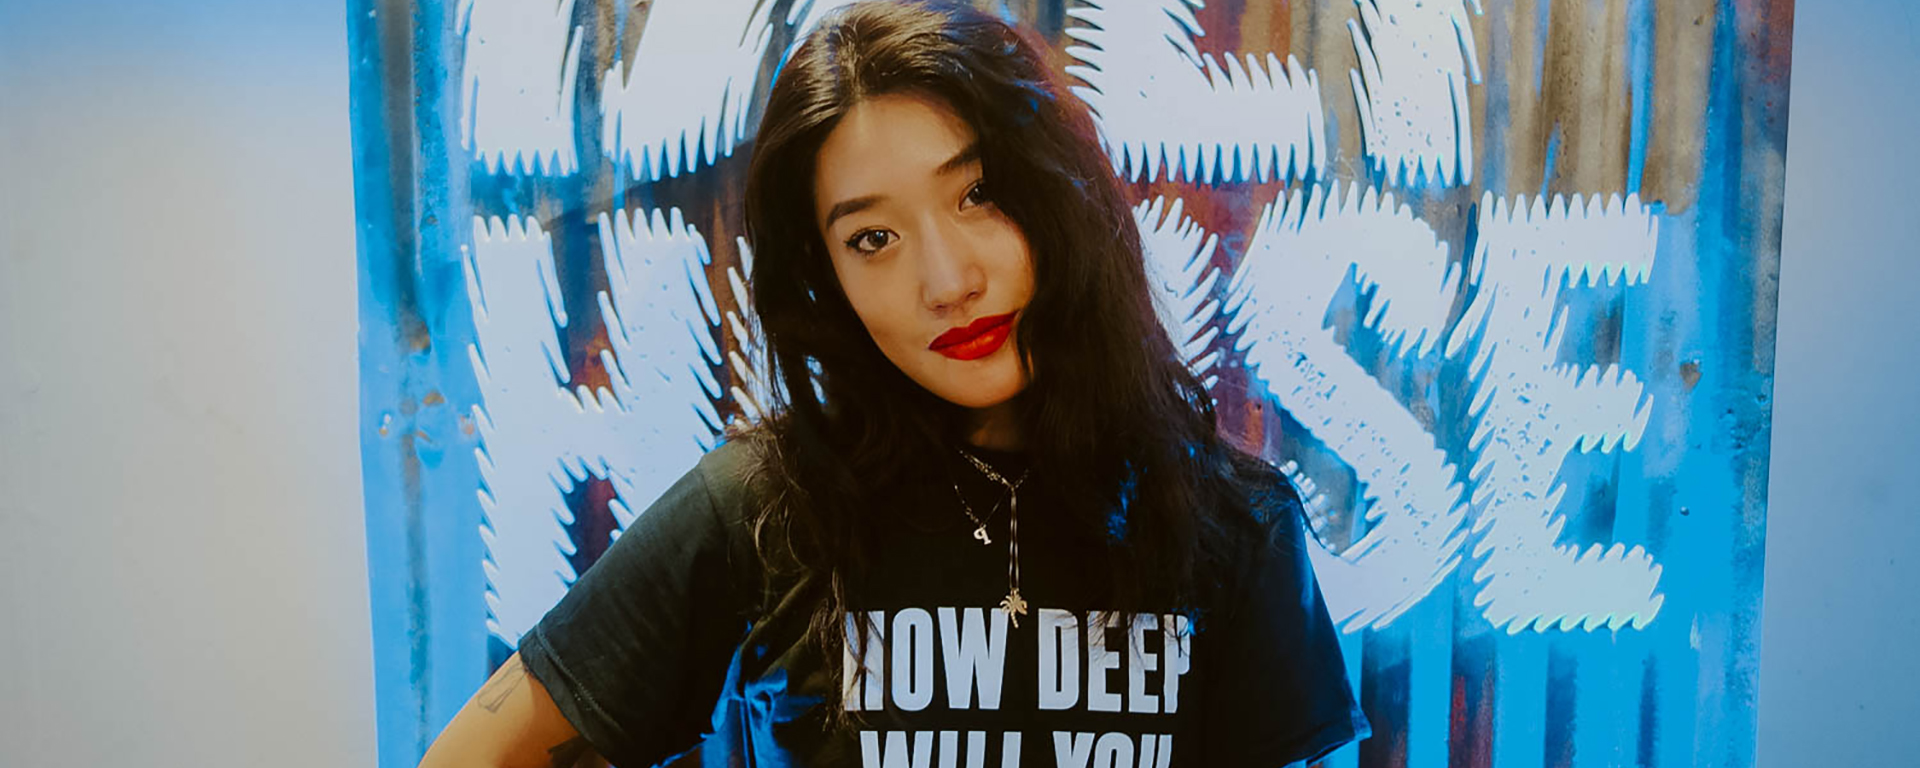 Peggy-Gou2_tunes&wings